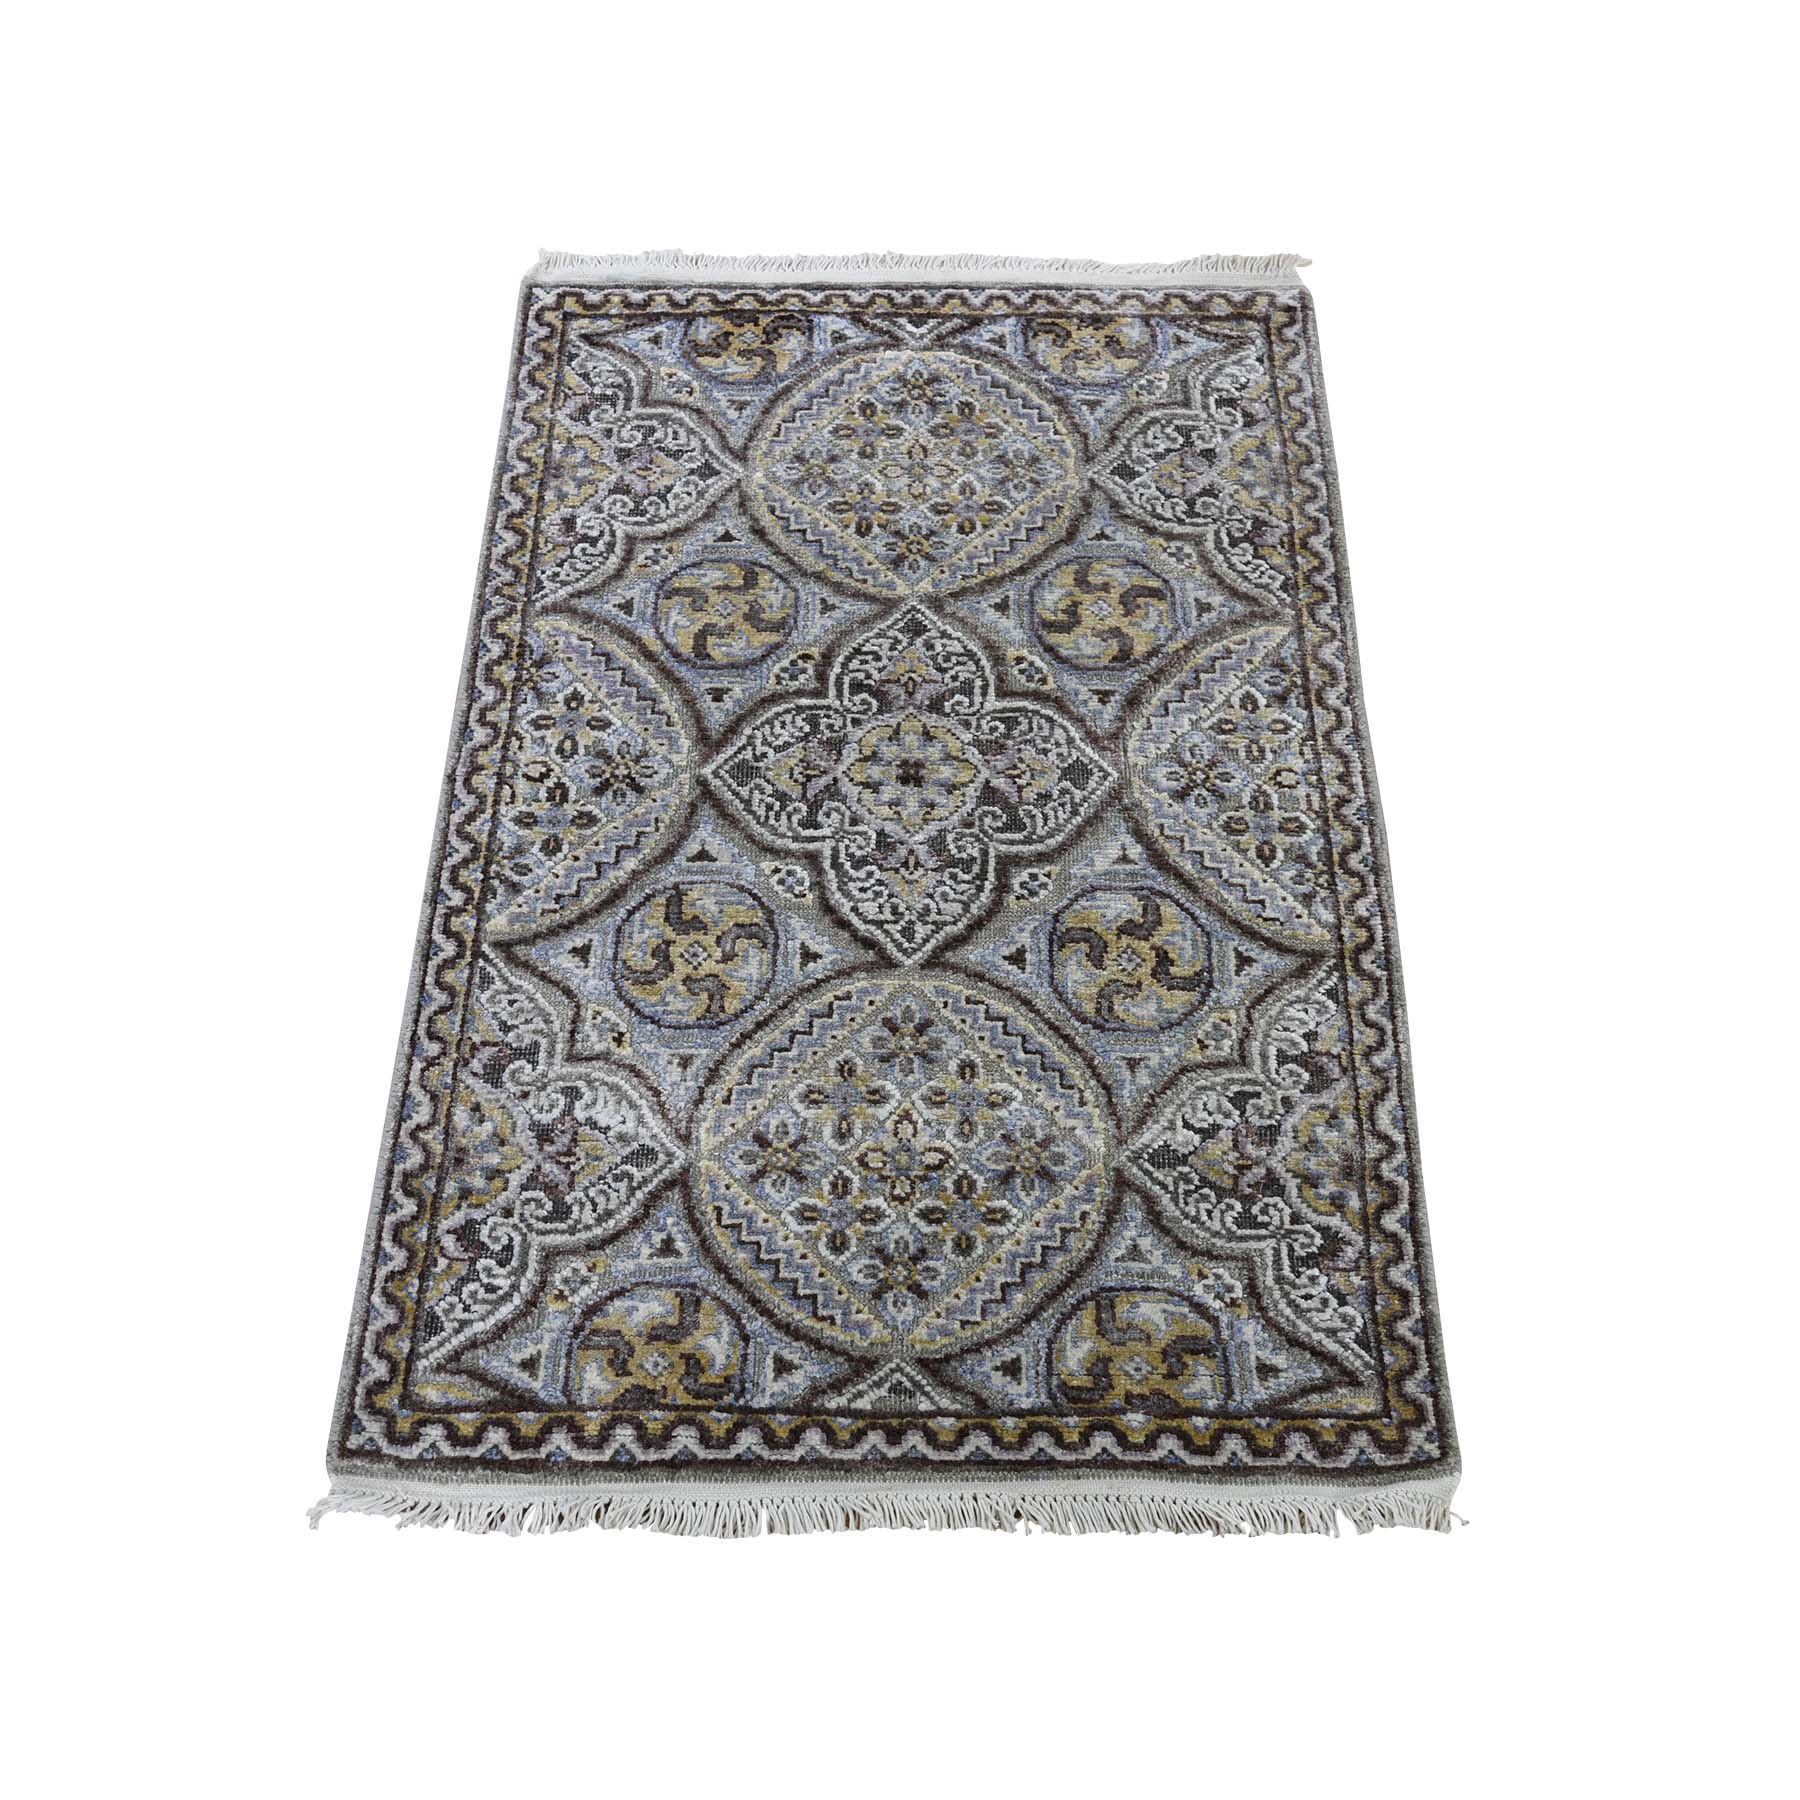 "2'1""X3'2"" Mughal Inspired Medallions Oxidized Wool And Silk Hand-Knotted Oriental Rug moadb08c"